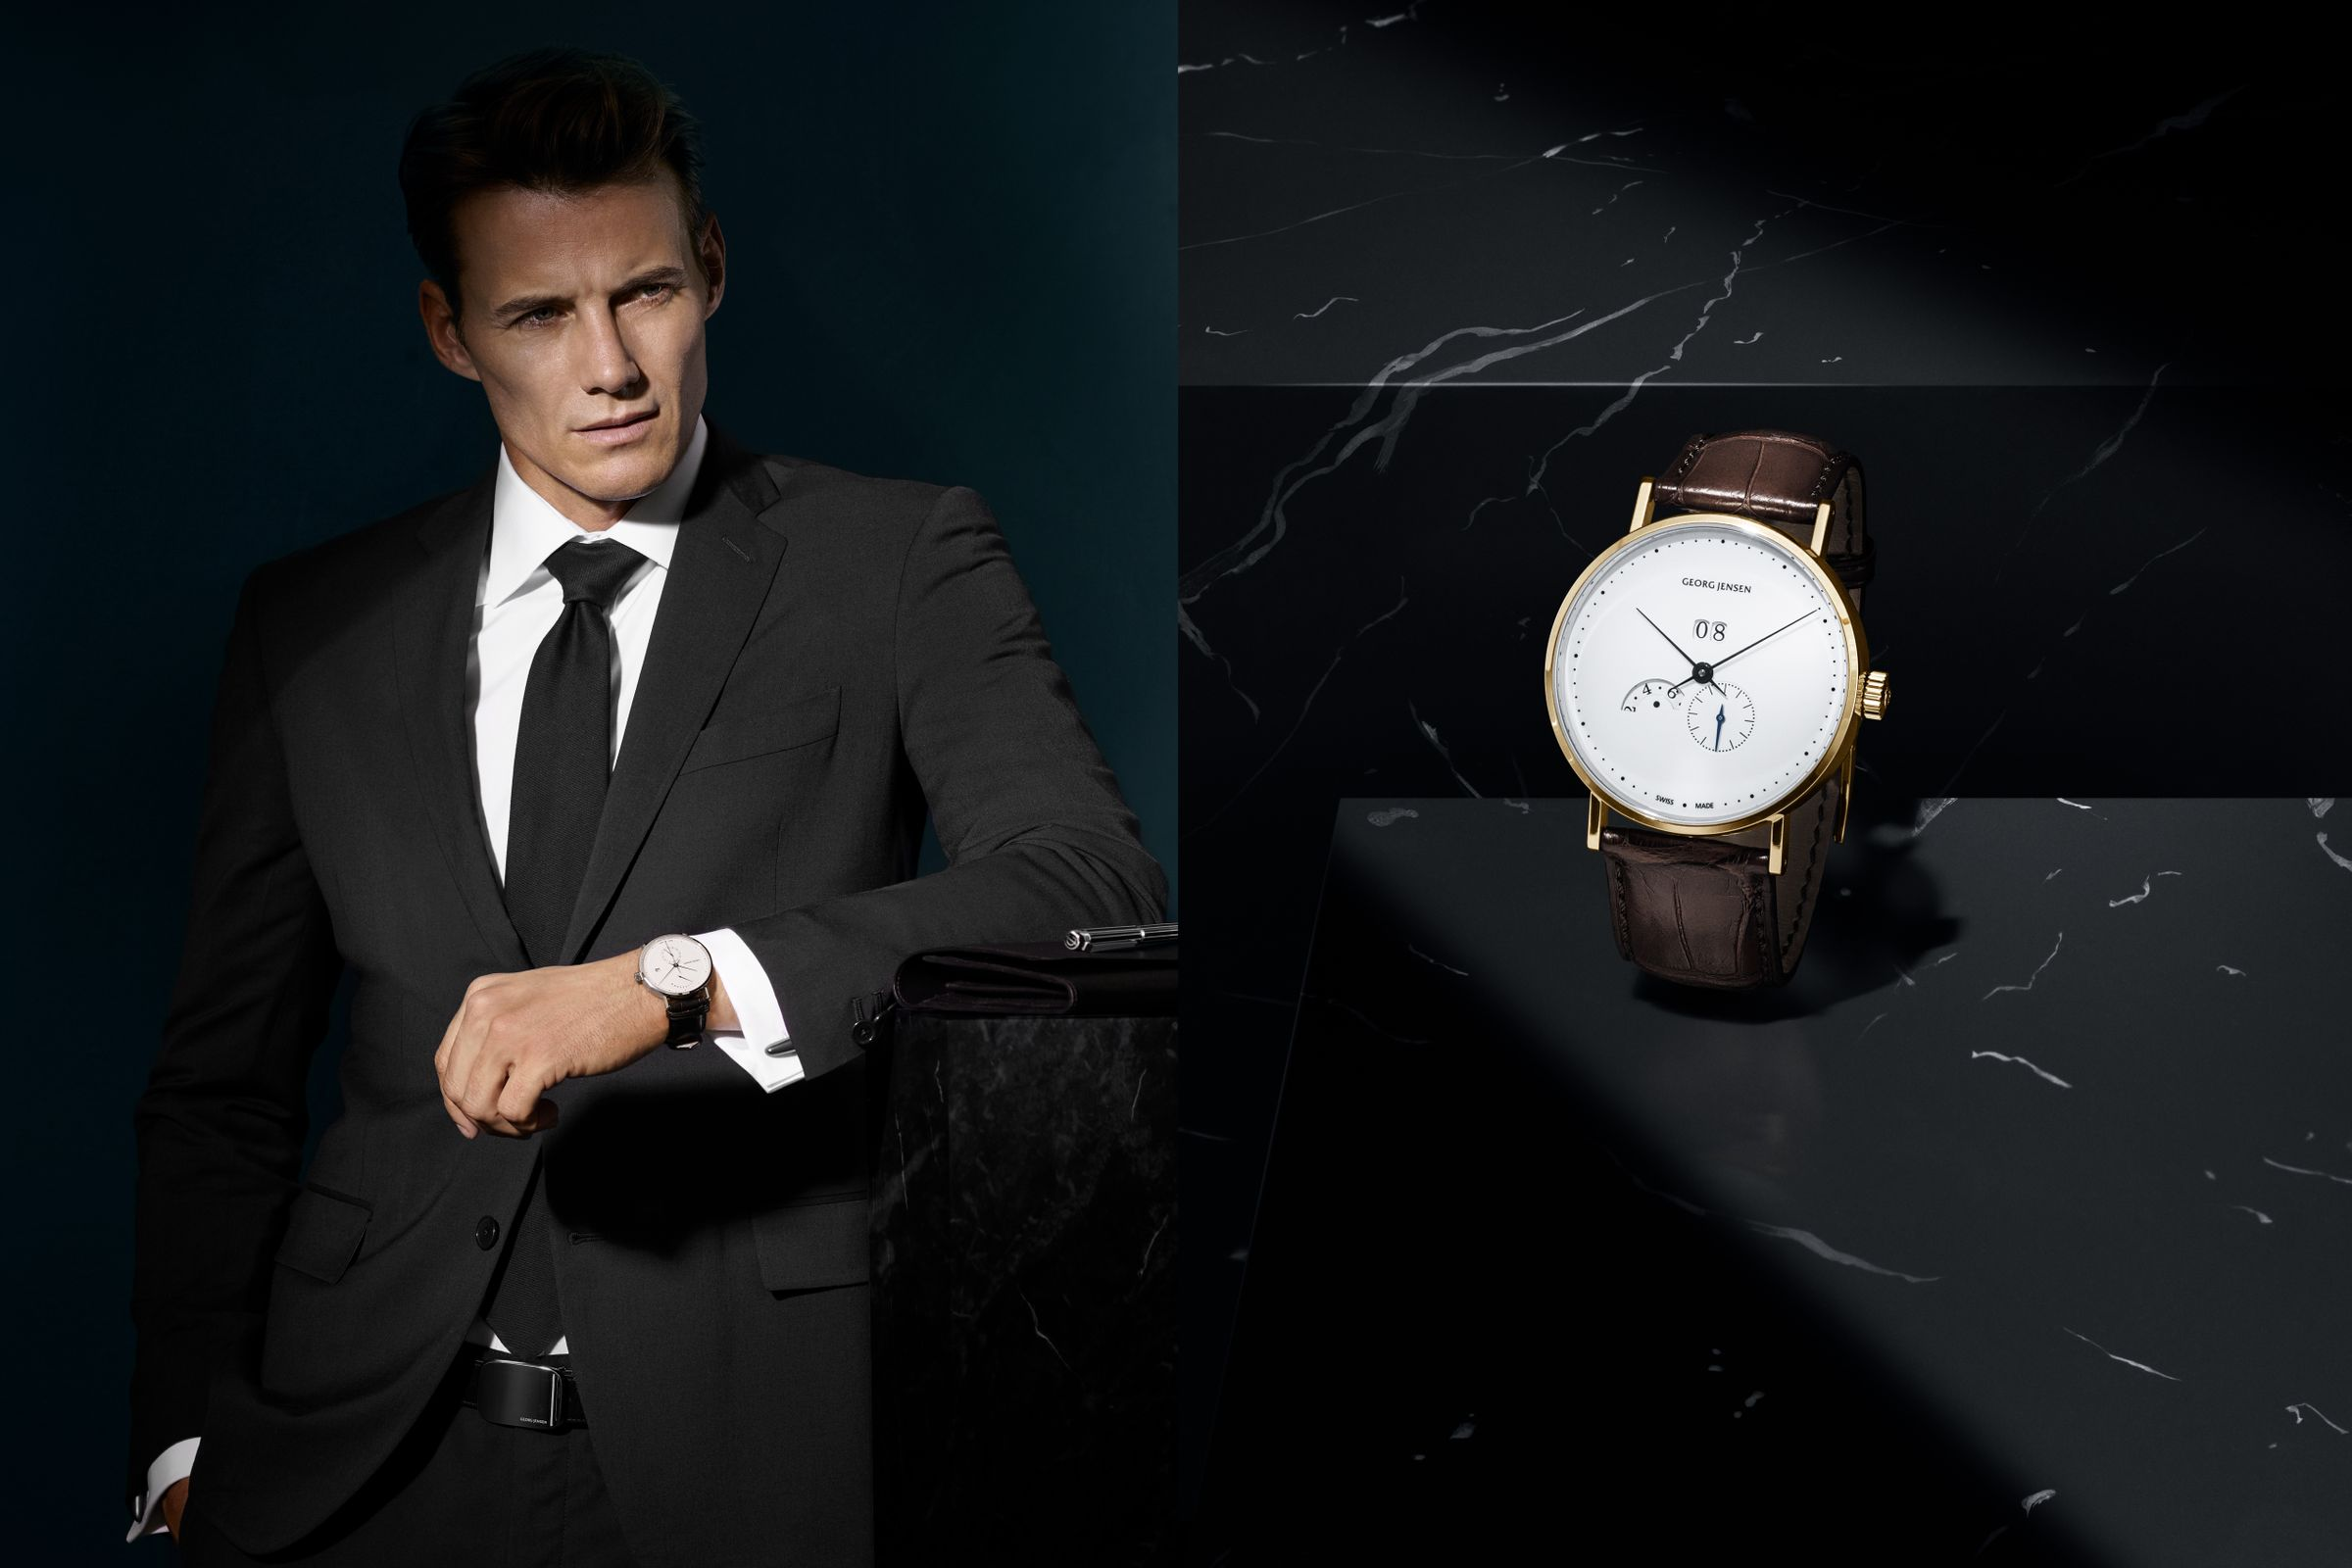 Georg Jensen men's campaign photographed by Hasse Nielsen